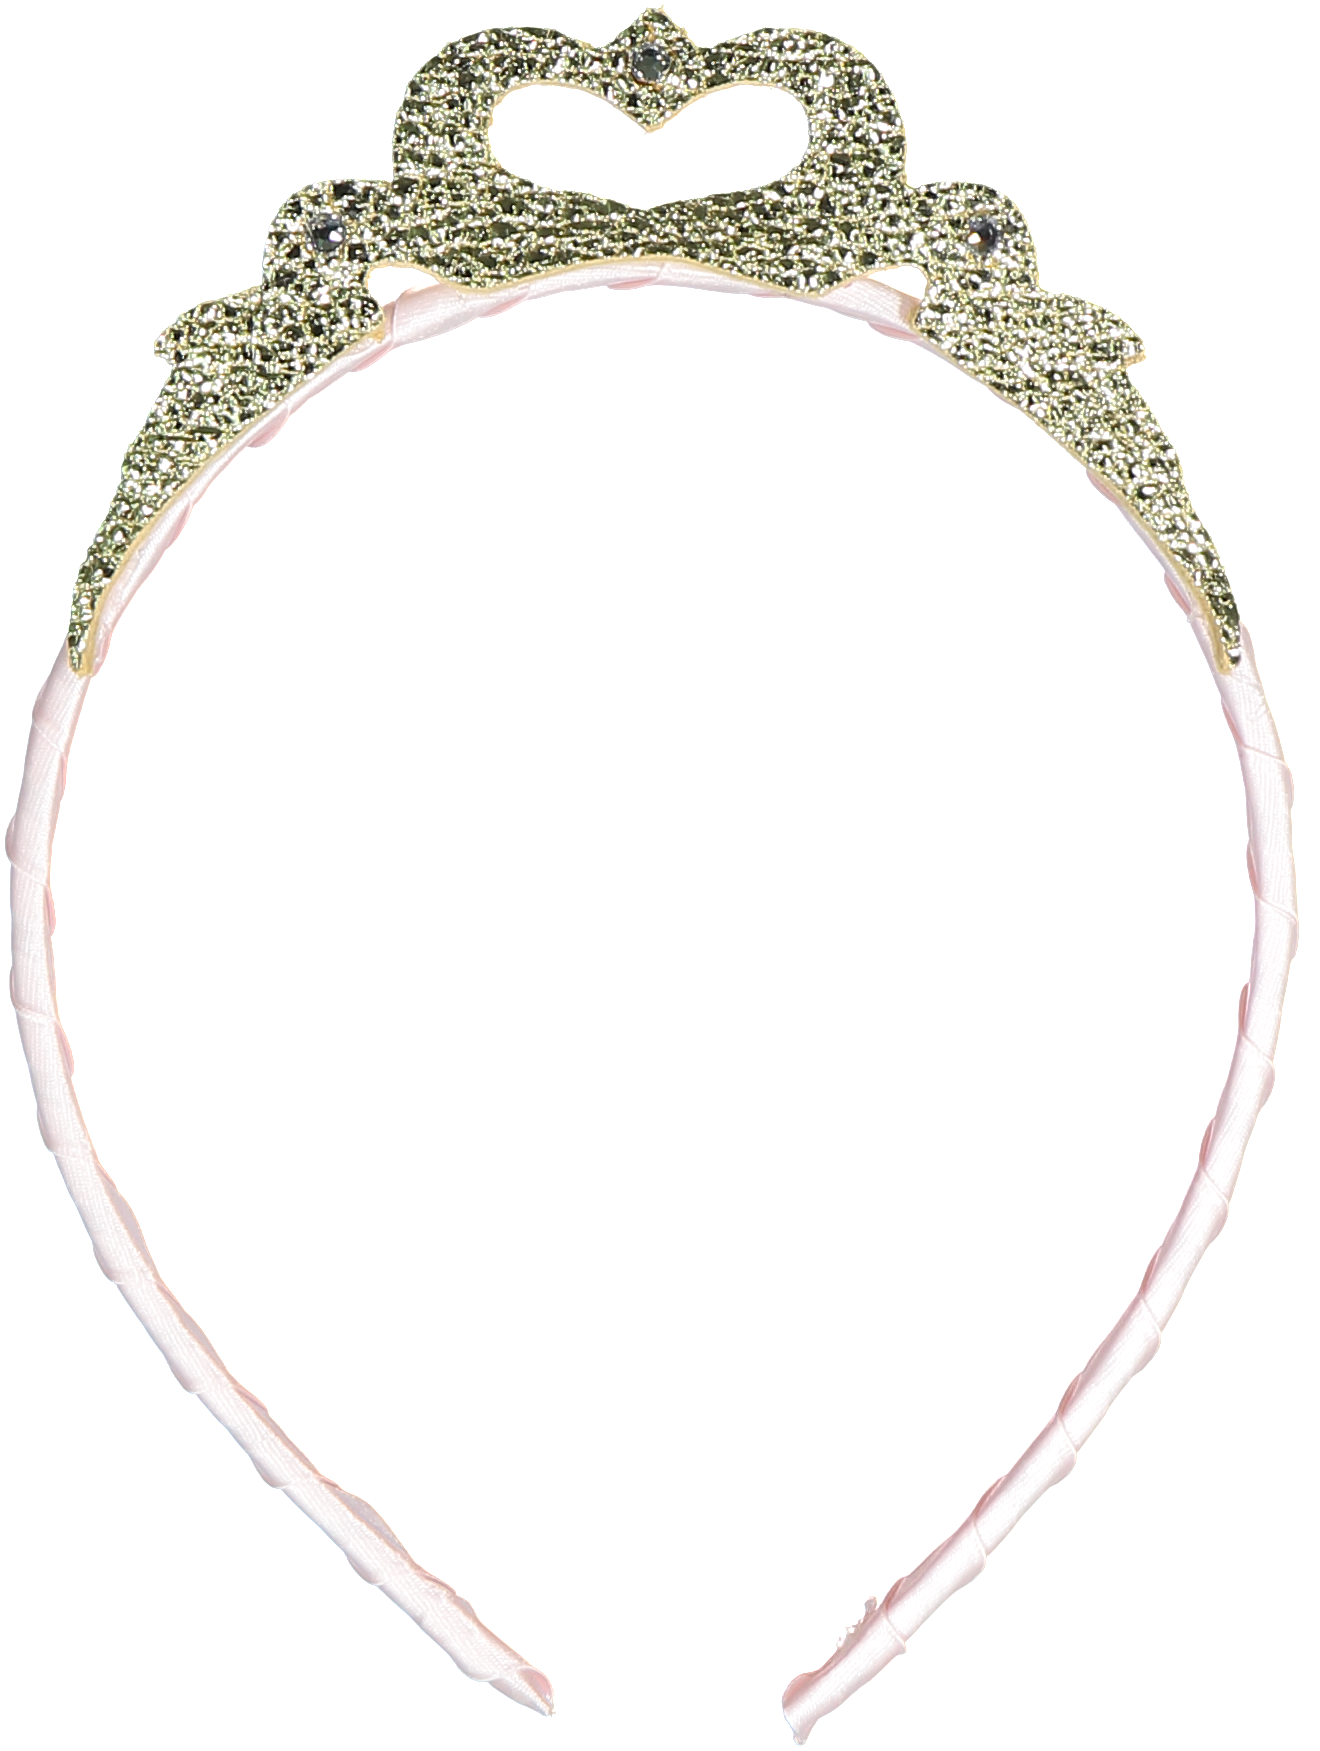 HEADBAND LEATHER CROWN PRINCESS GOLD